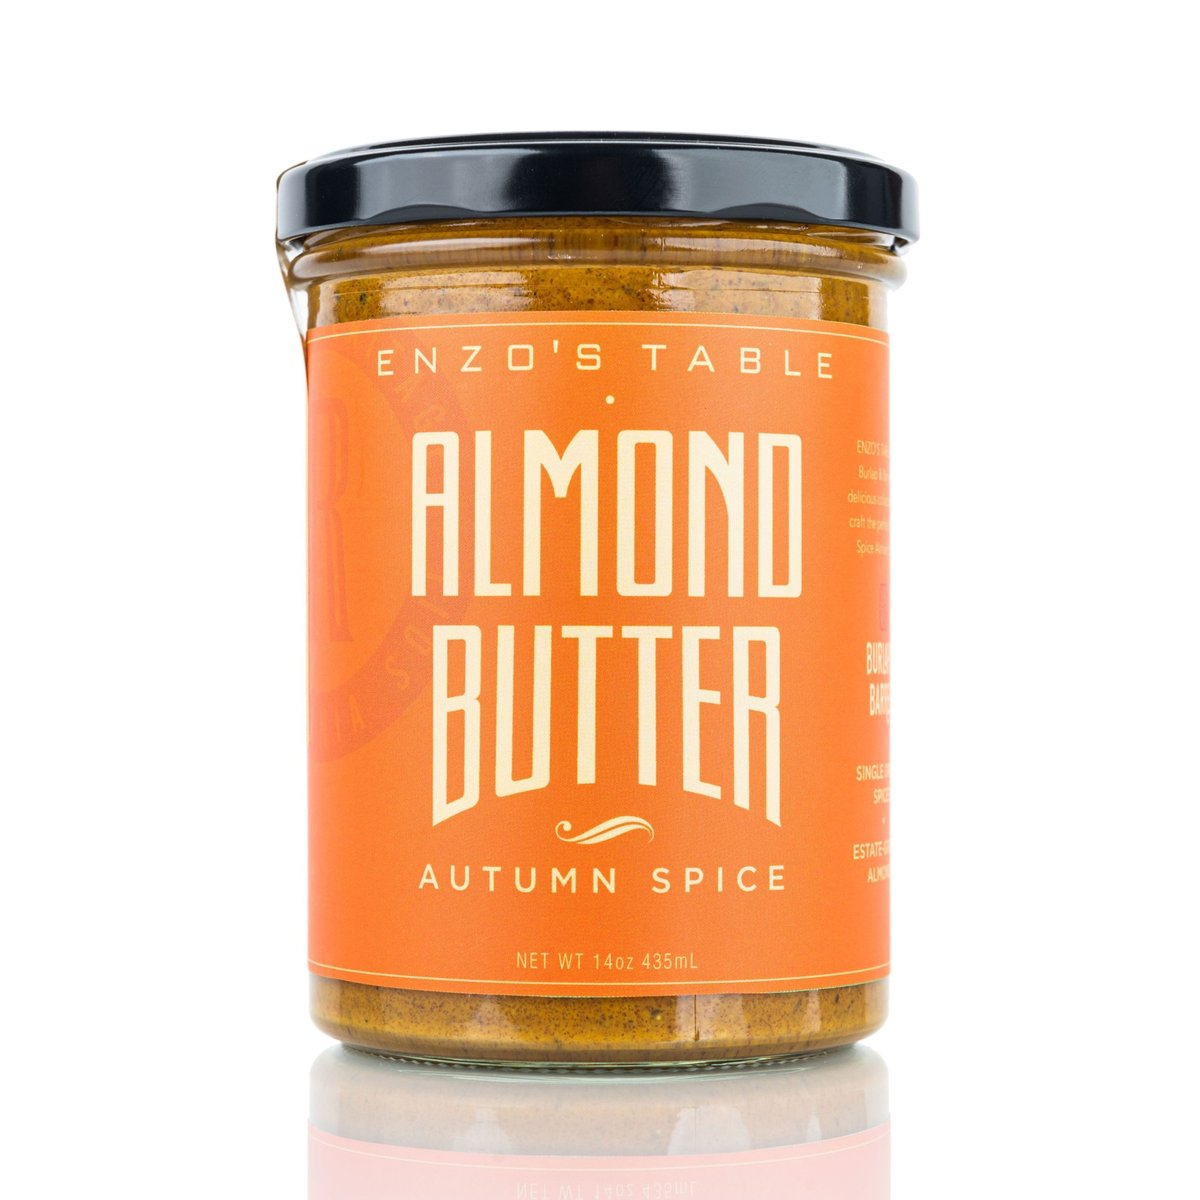 ENZO Autumn Spice Almond Butter